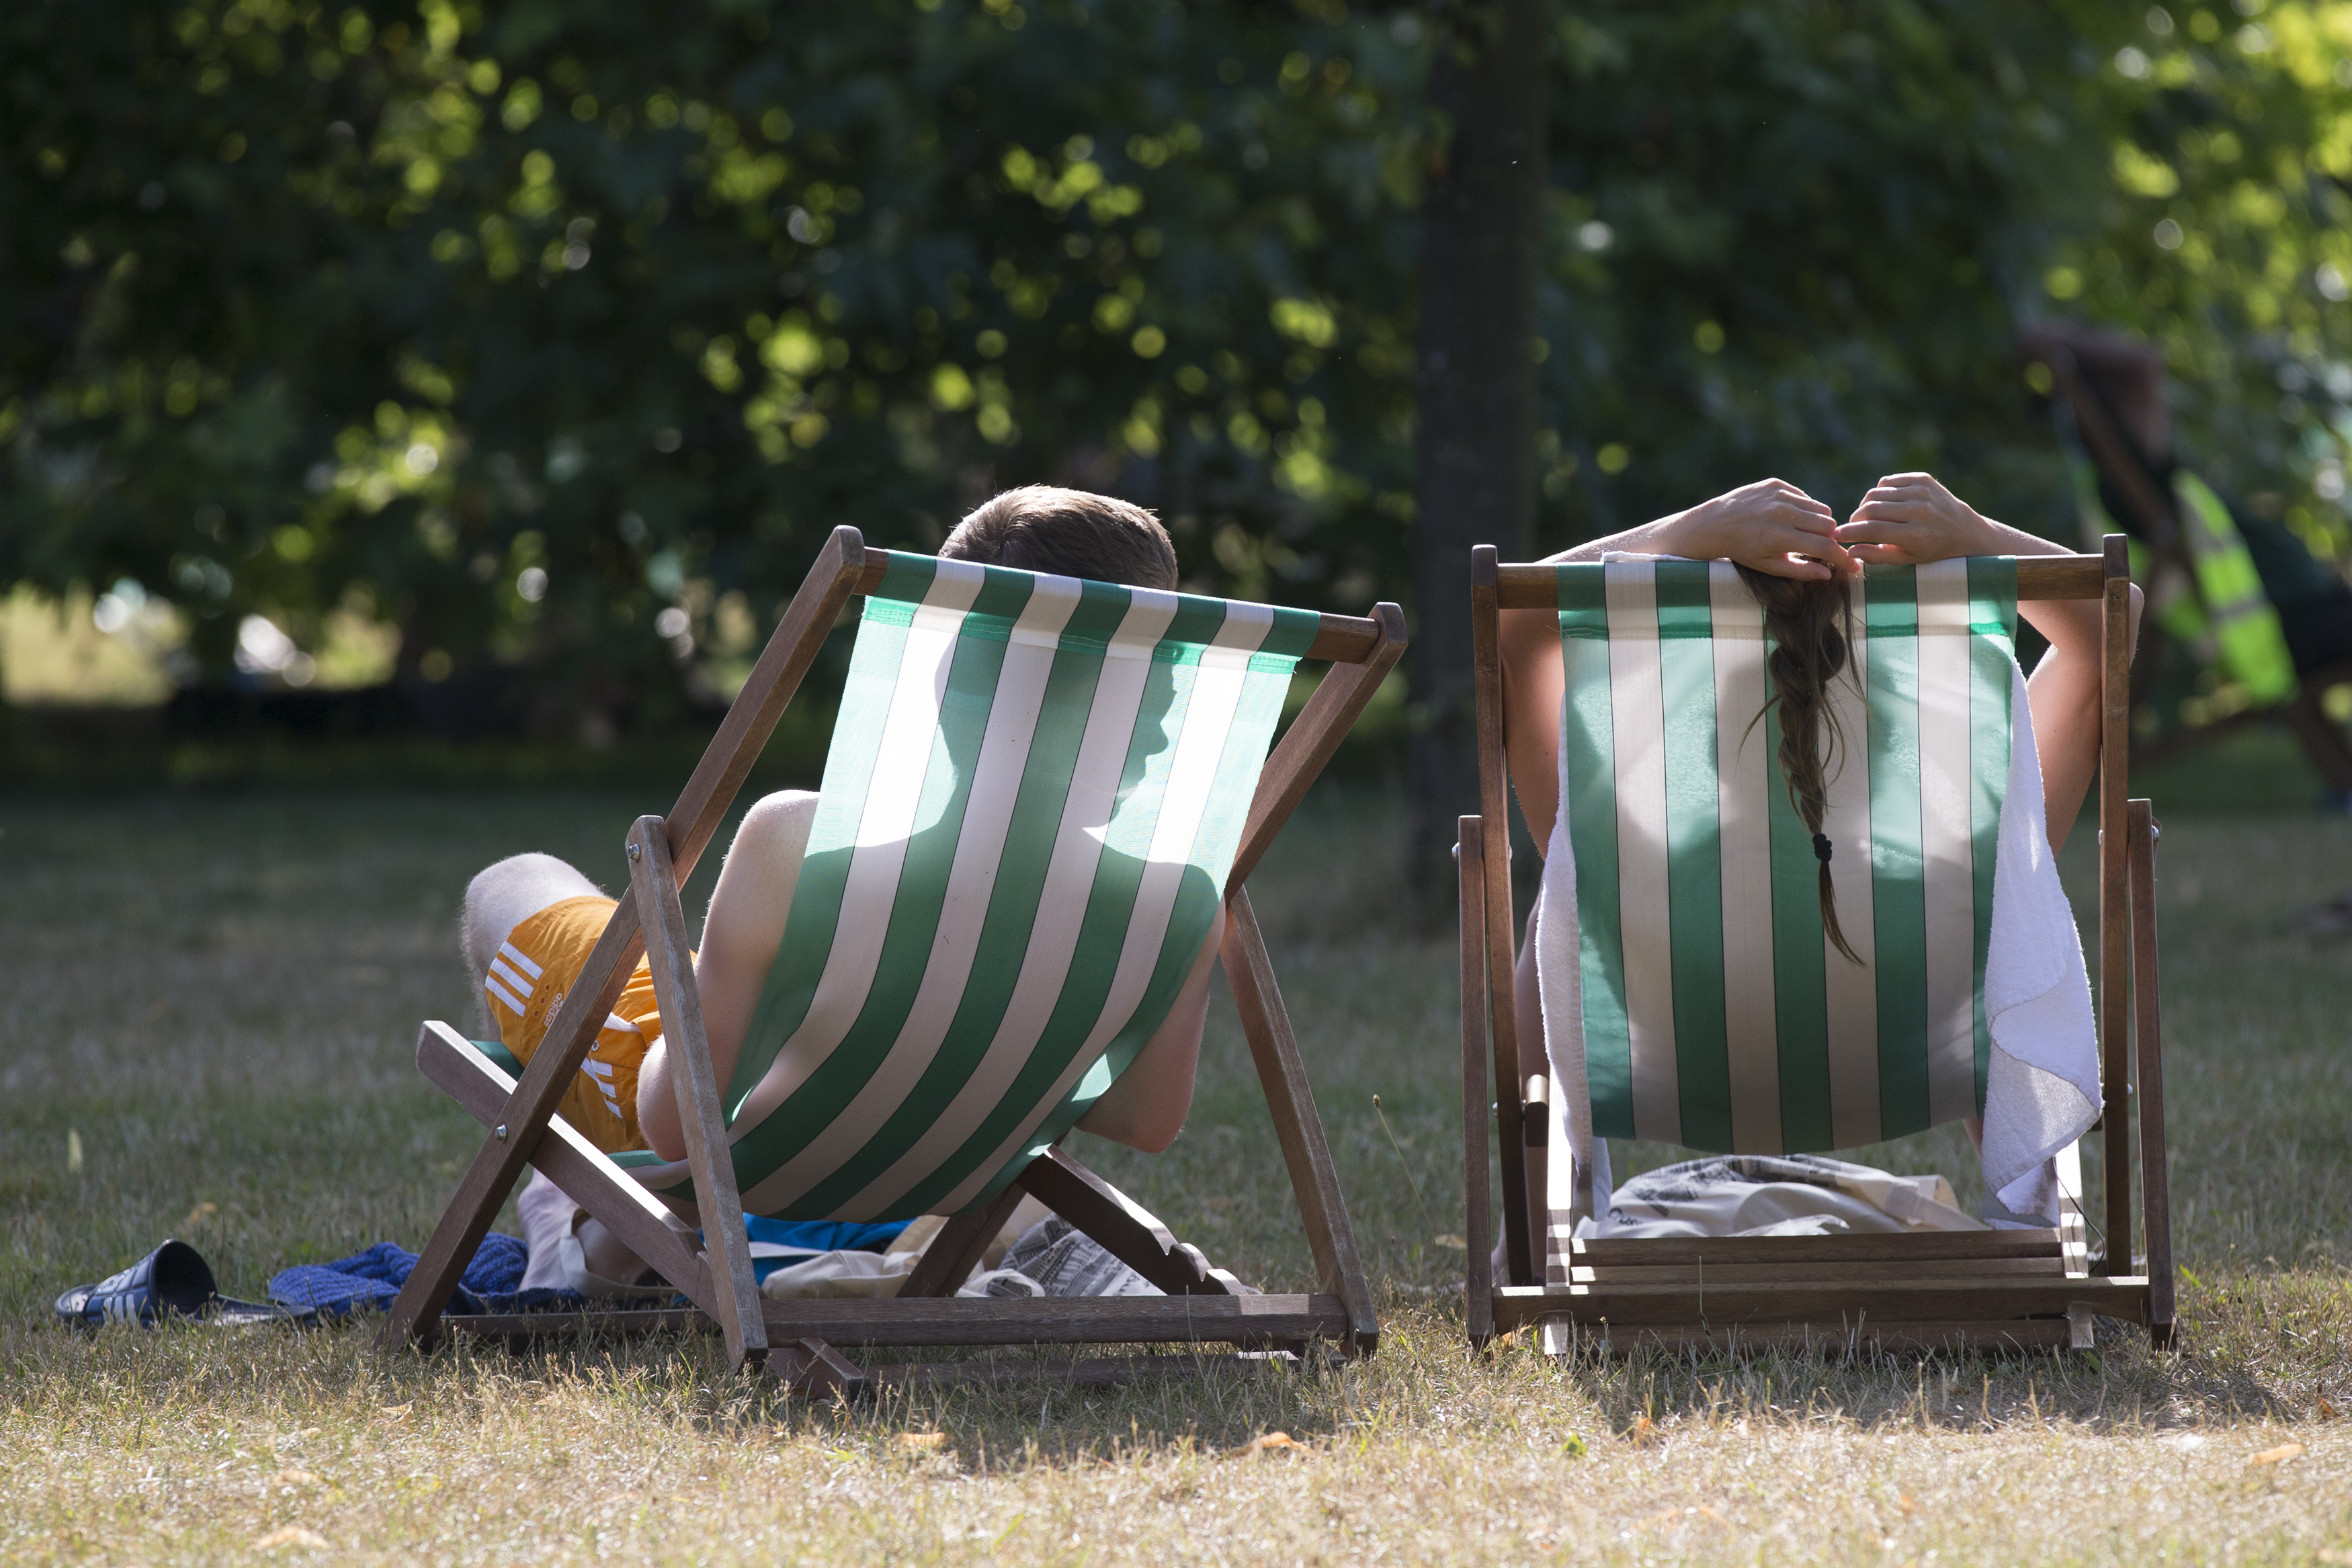 A couple relax on deckchairs in the warm weather in Hyde Park on July 18, 2014 in London as temperatures soar to their highest of the year.